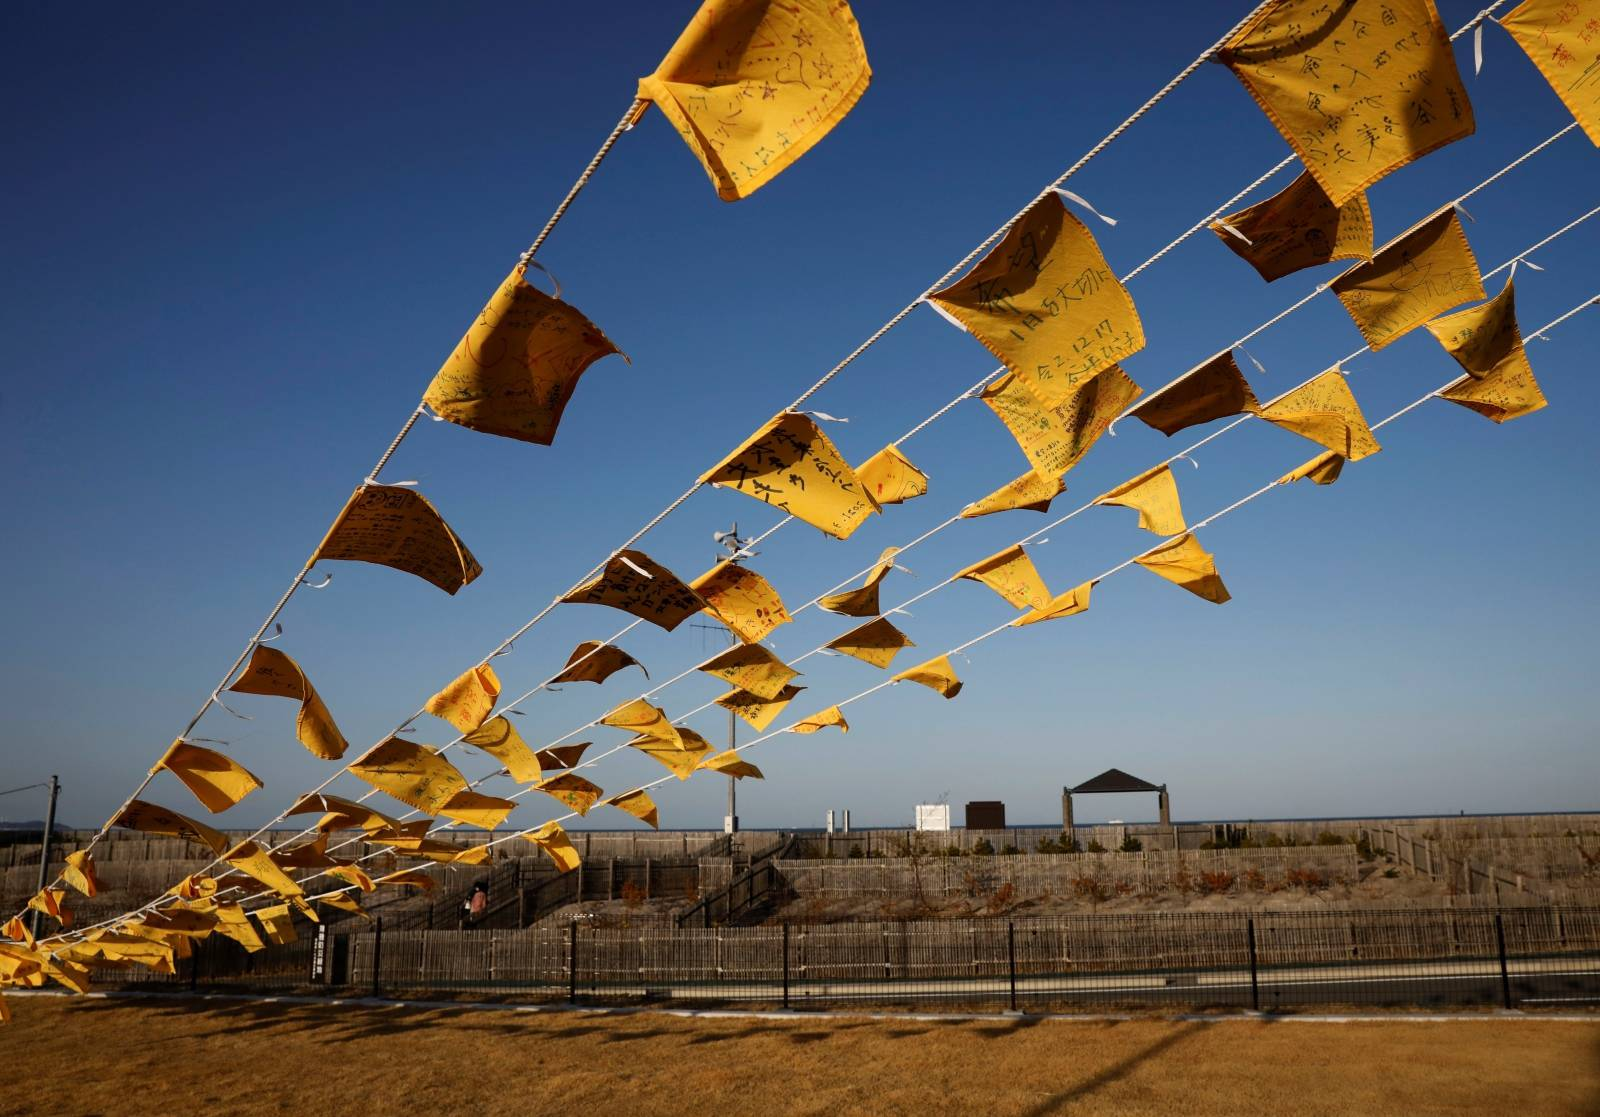 Yellow handkerchiefs with messages supporting people in areas hit by the 2011 earthquake and tsunami are hanged ahead of the 10th anniversary of Fukushima disaster, in Iwaki